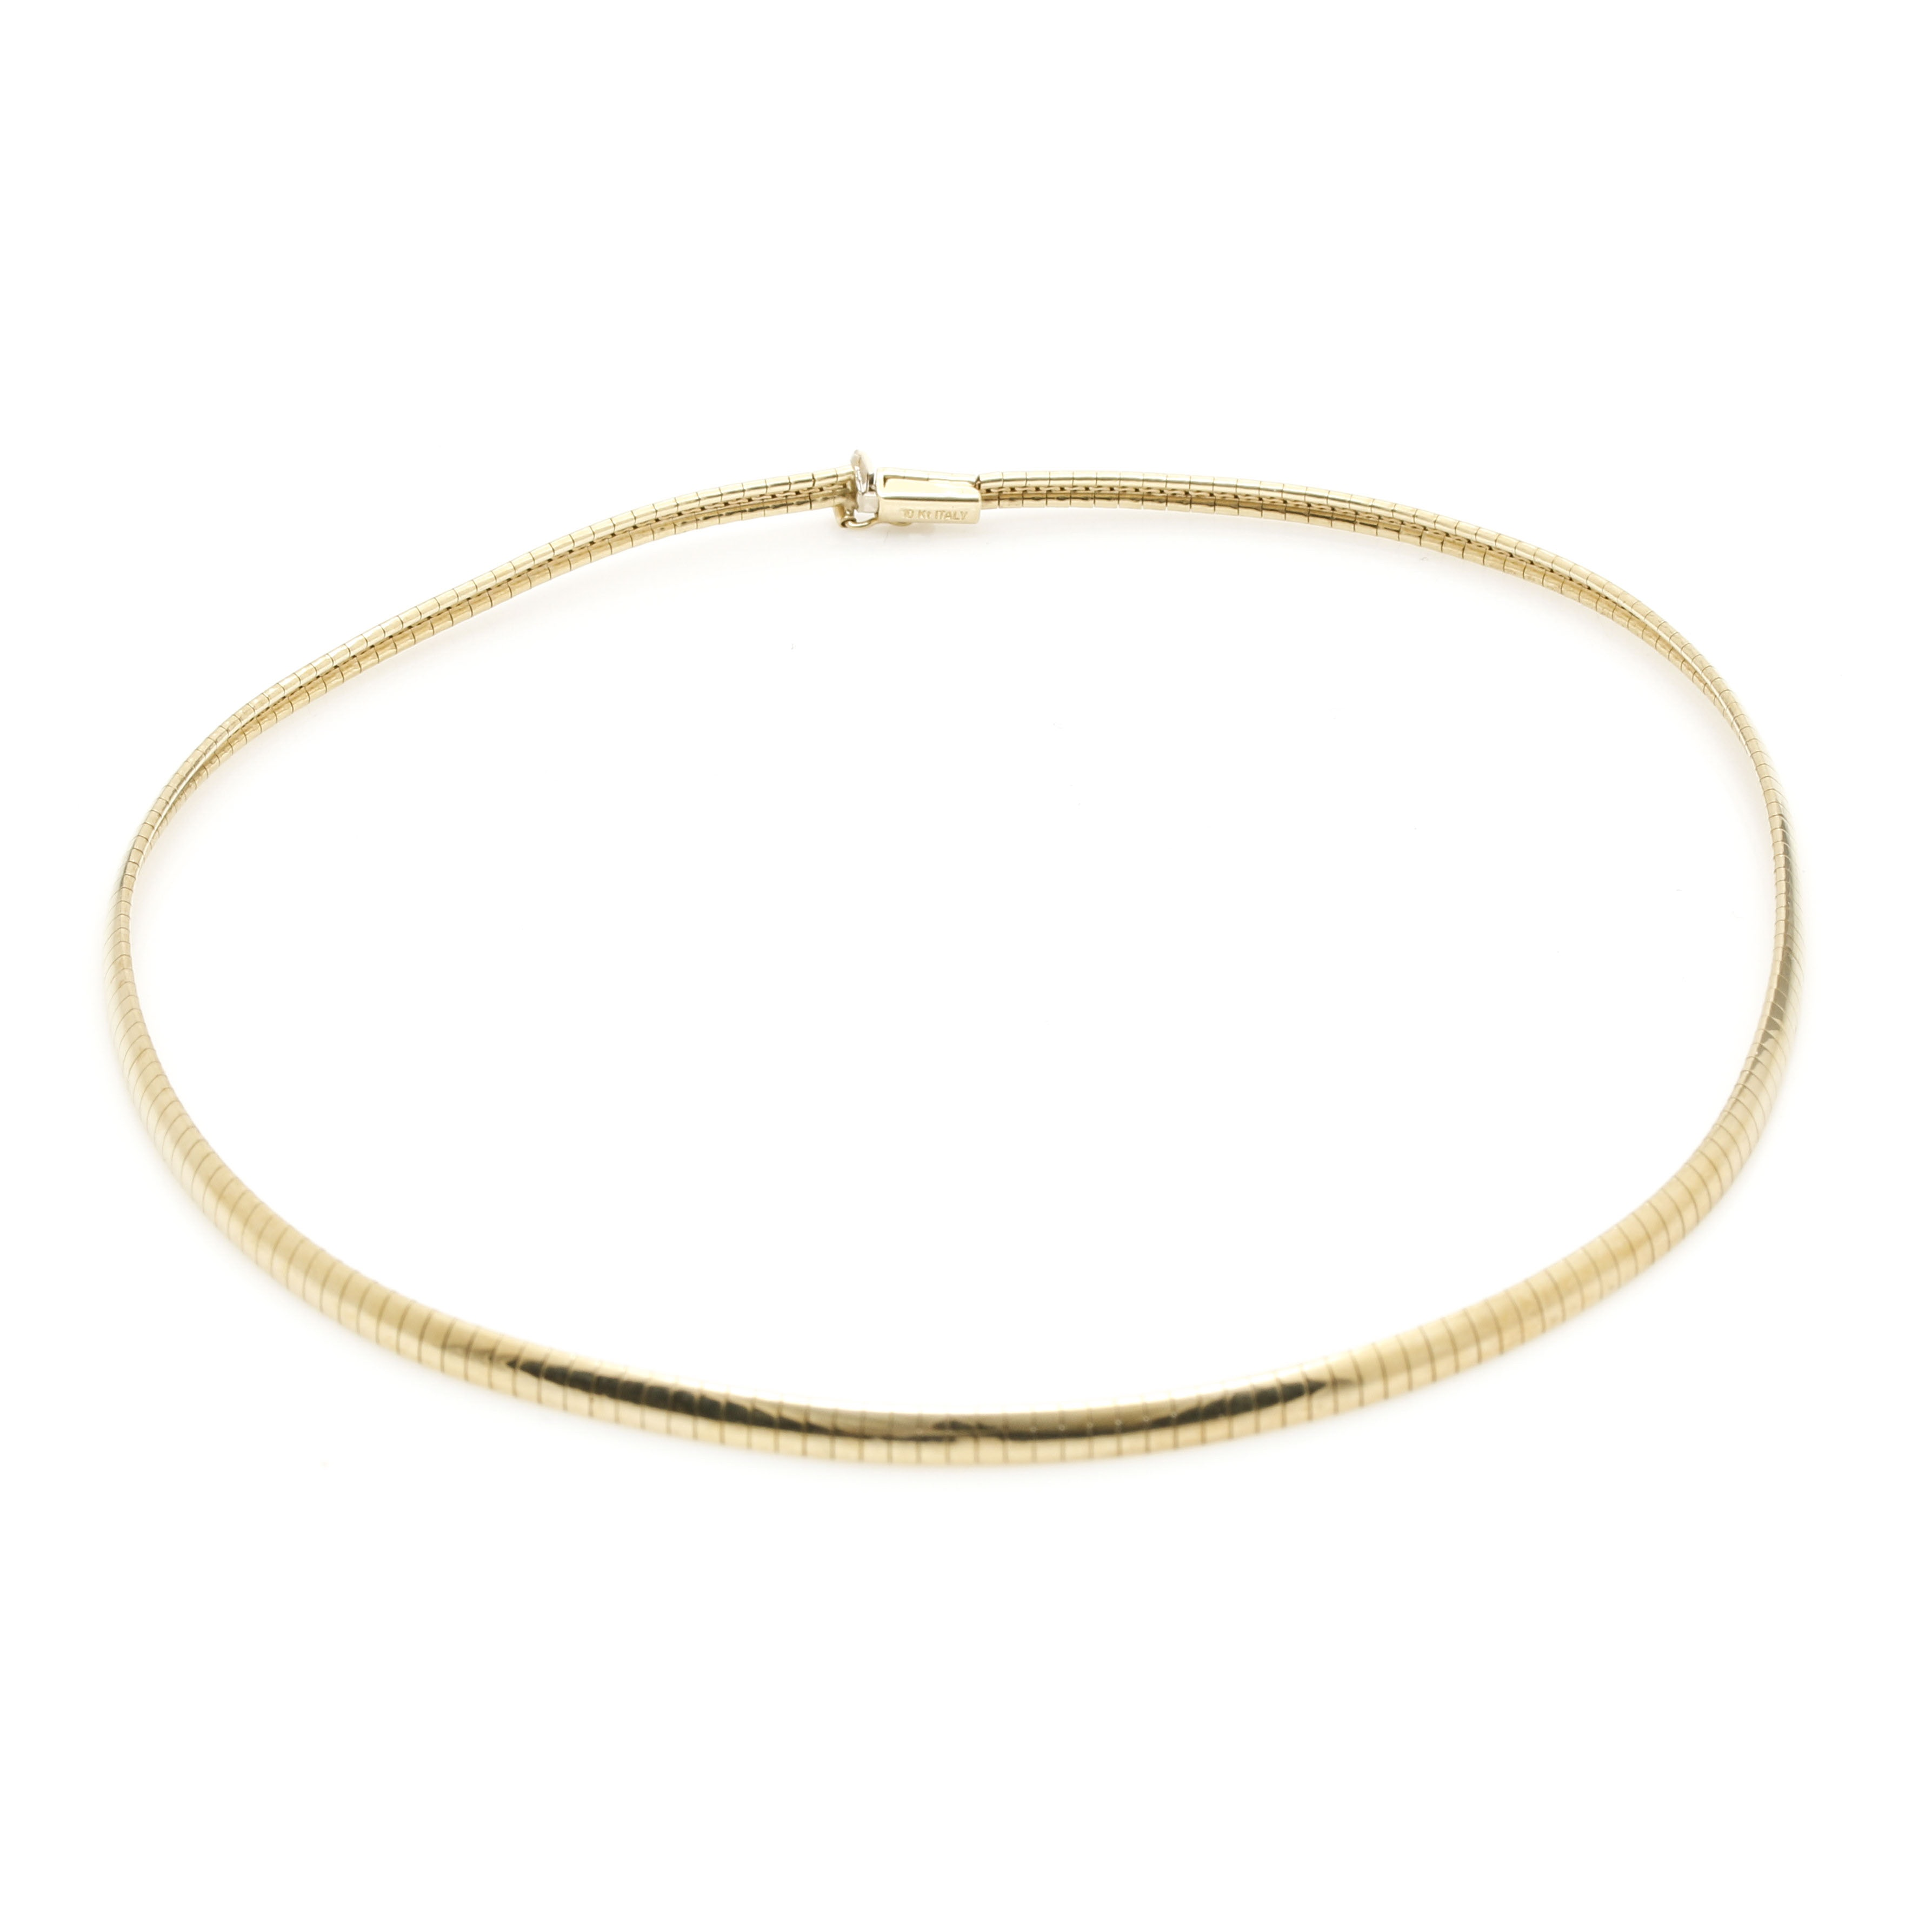 10K Yellow Gold Omega Chain Necklace